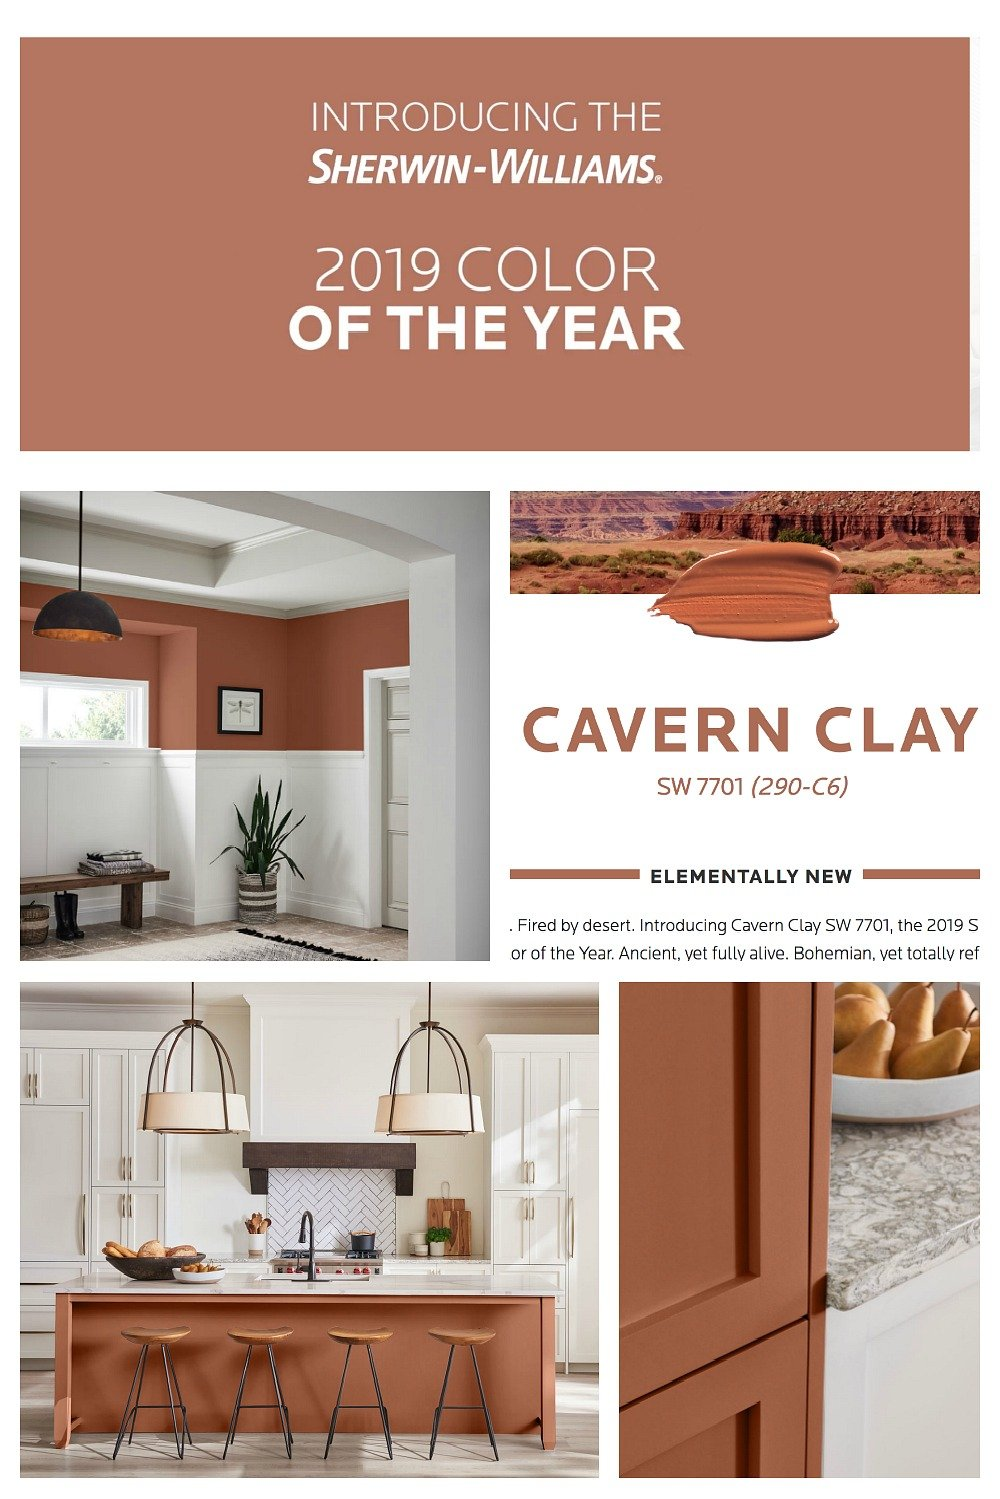 Sherwin Williams 2019 Color of the Year Cavern Clay